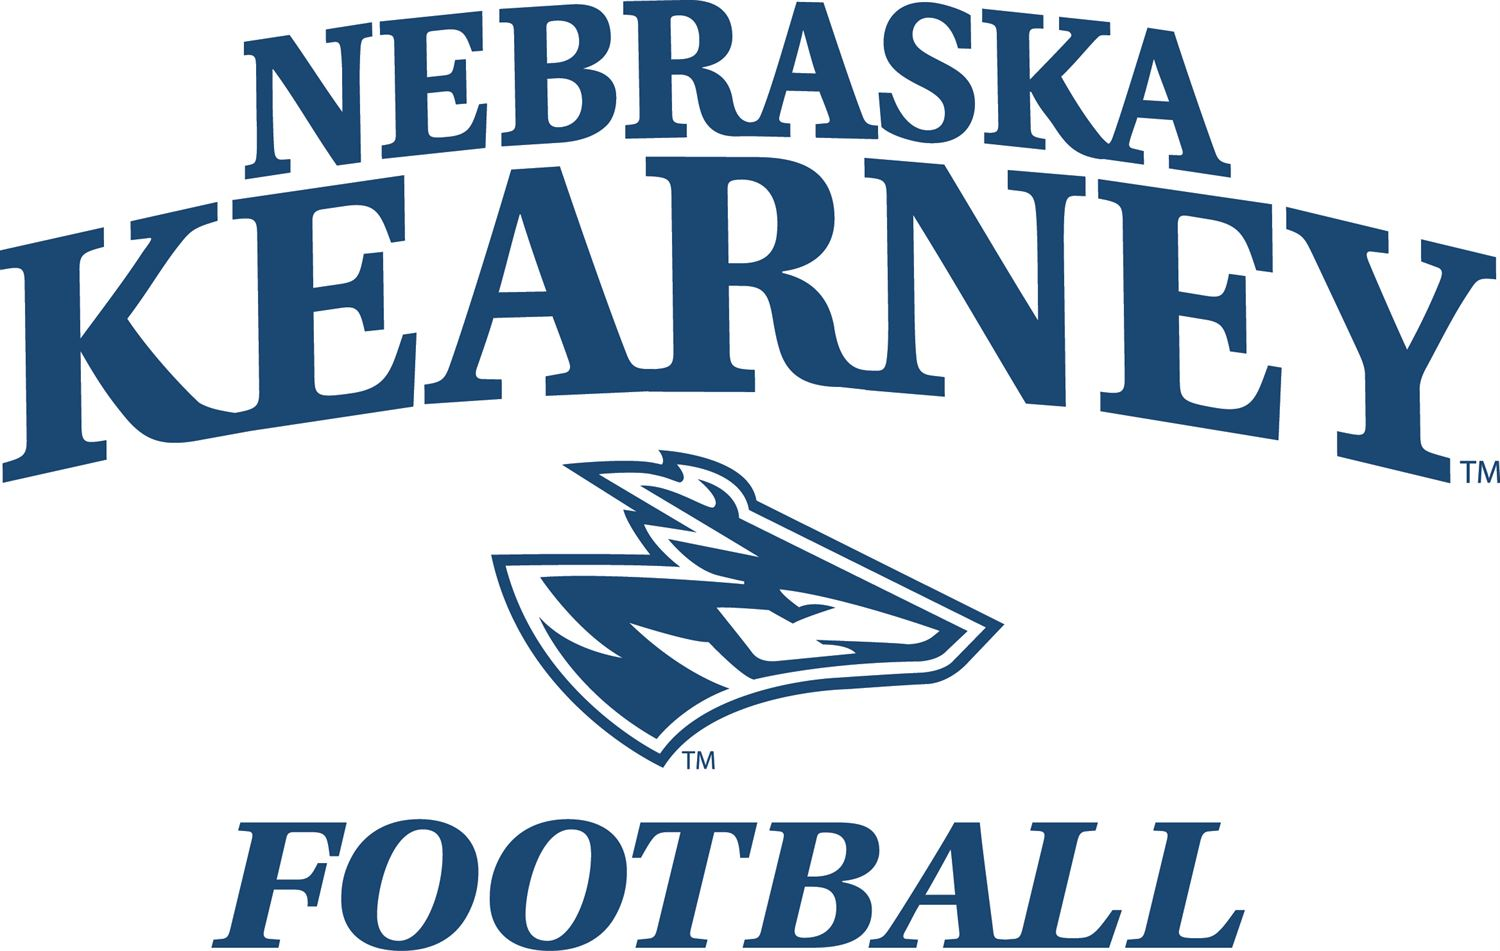 University of Nebraska at Kearney - UNK Football